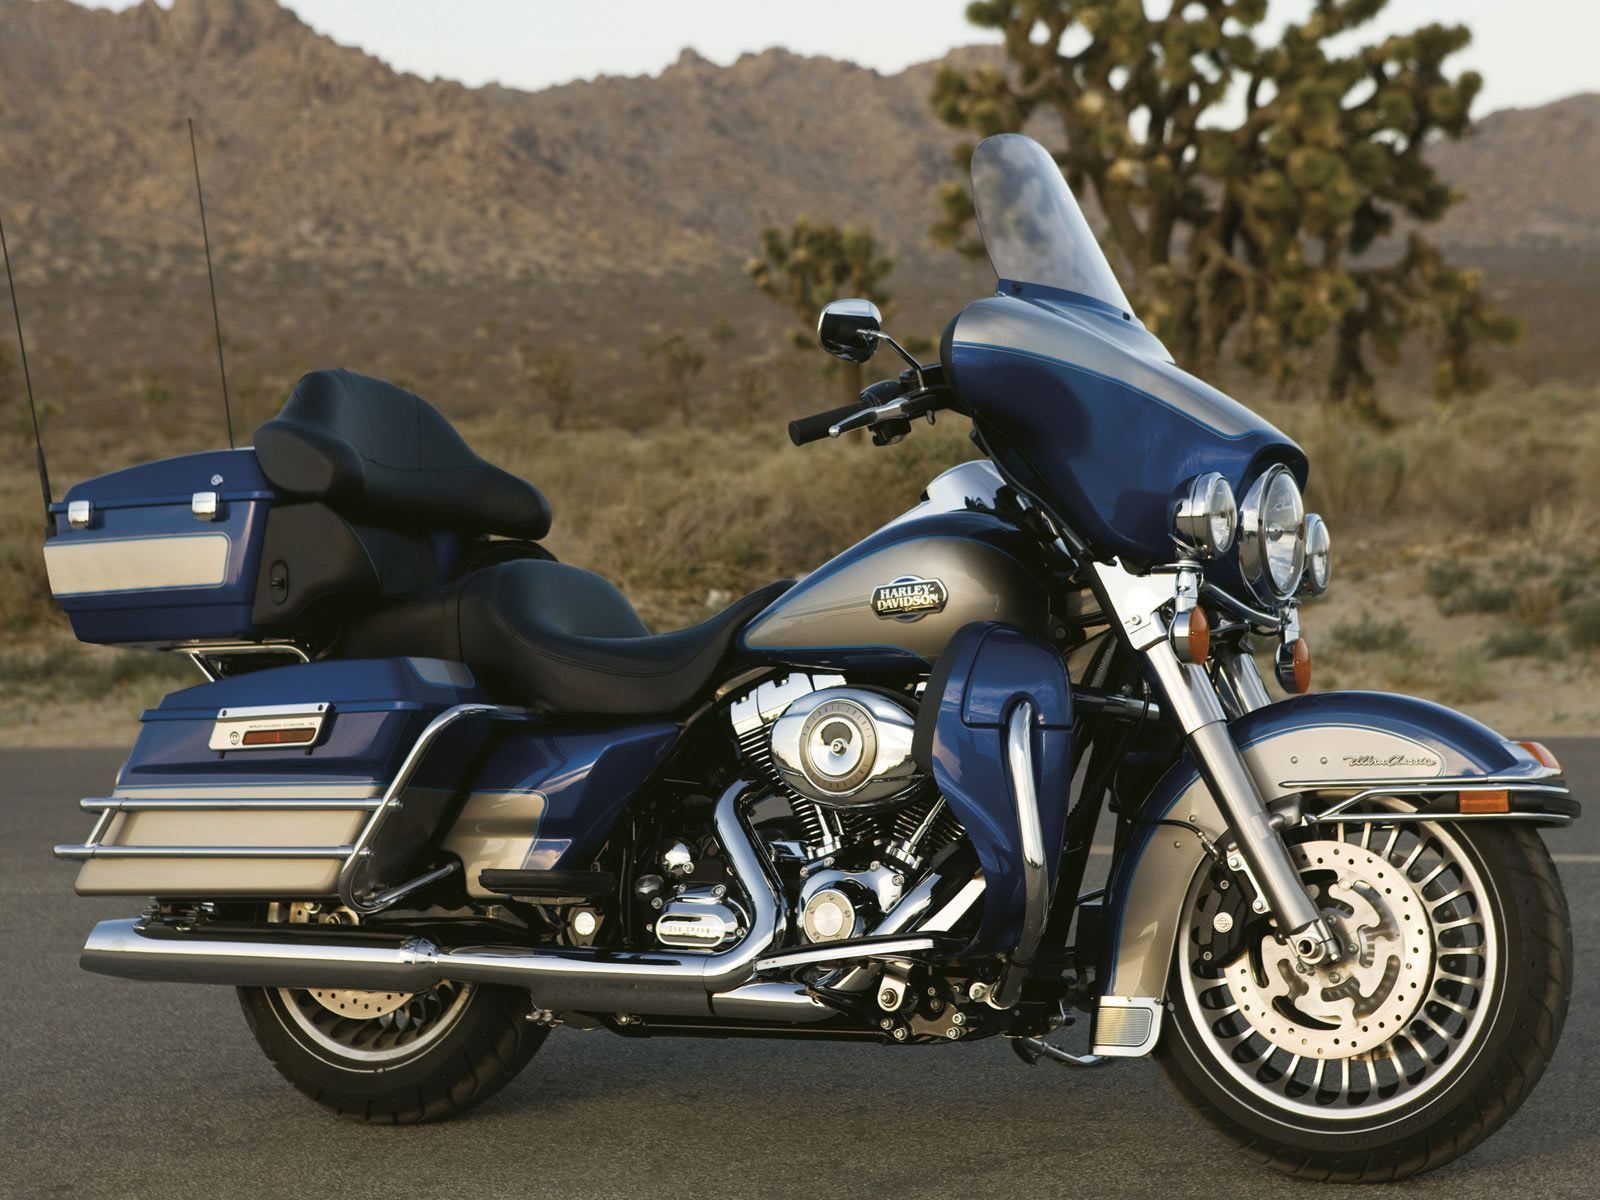 Harley-Davidson FLHTC Electra Glide Classic 2010 pics #19052